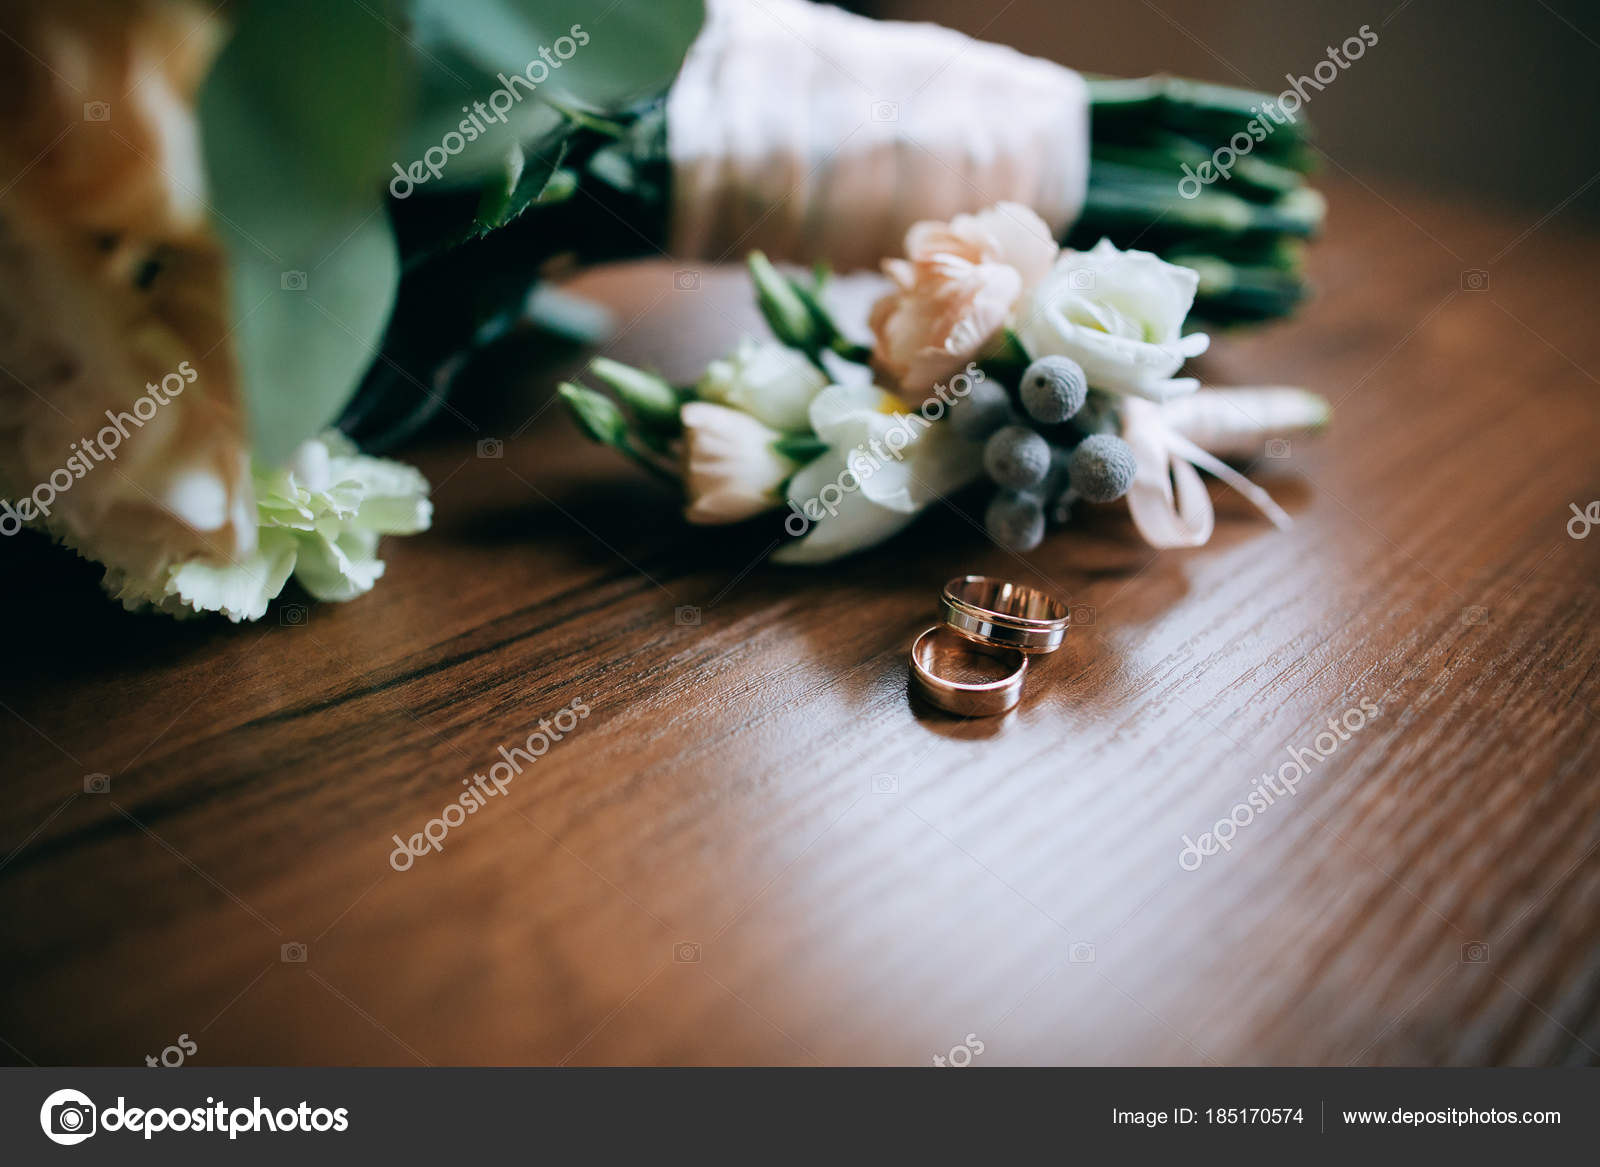 stock roses events bouquet image photo of wedding rings bridal location flowers pink flower lying